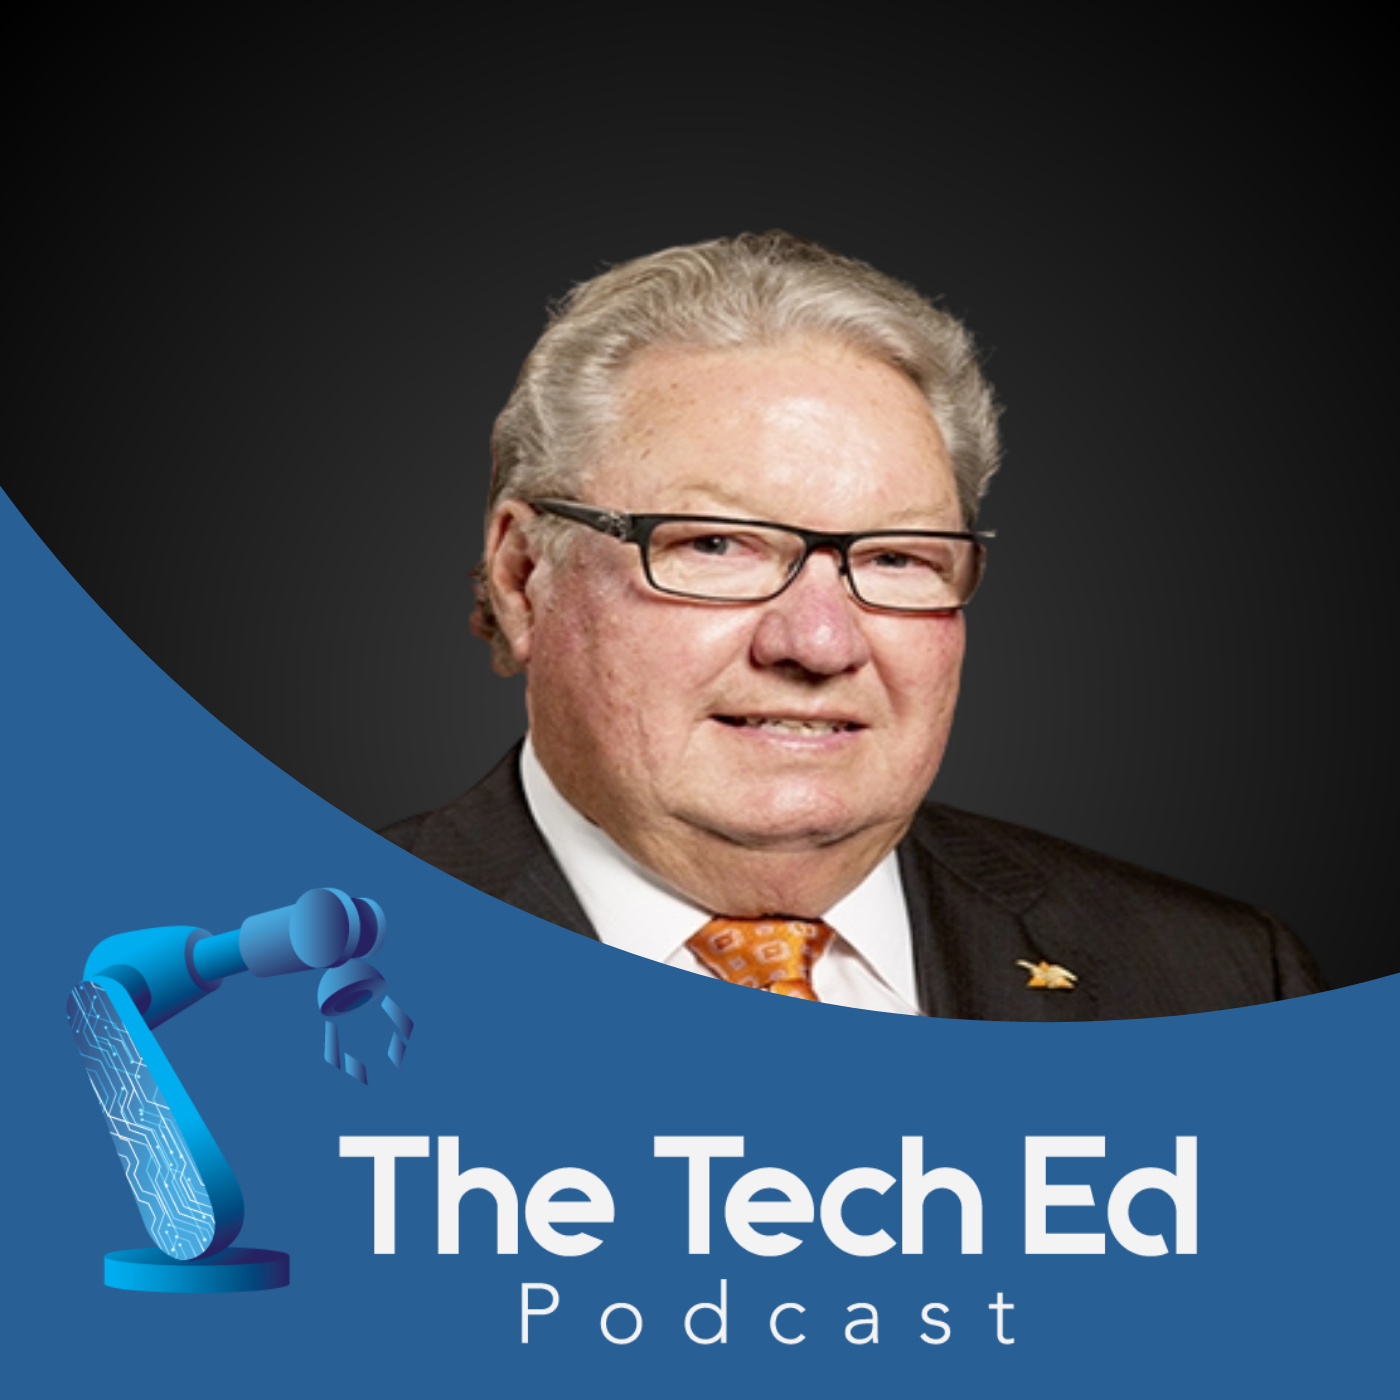 Ron Wanek on The TechEd Podcast